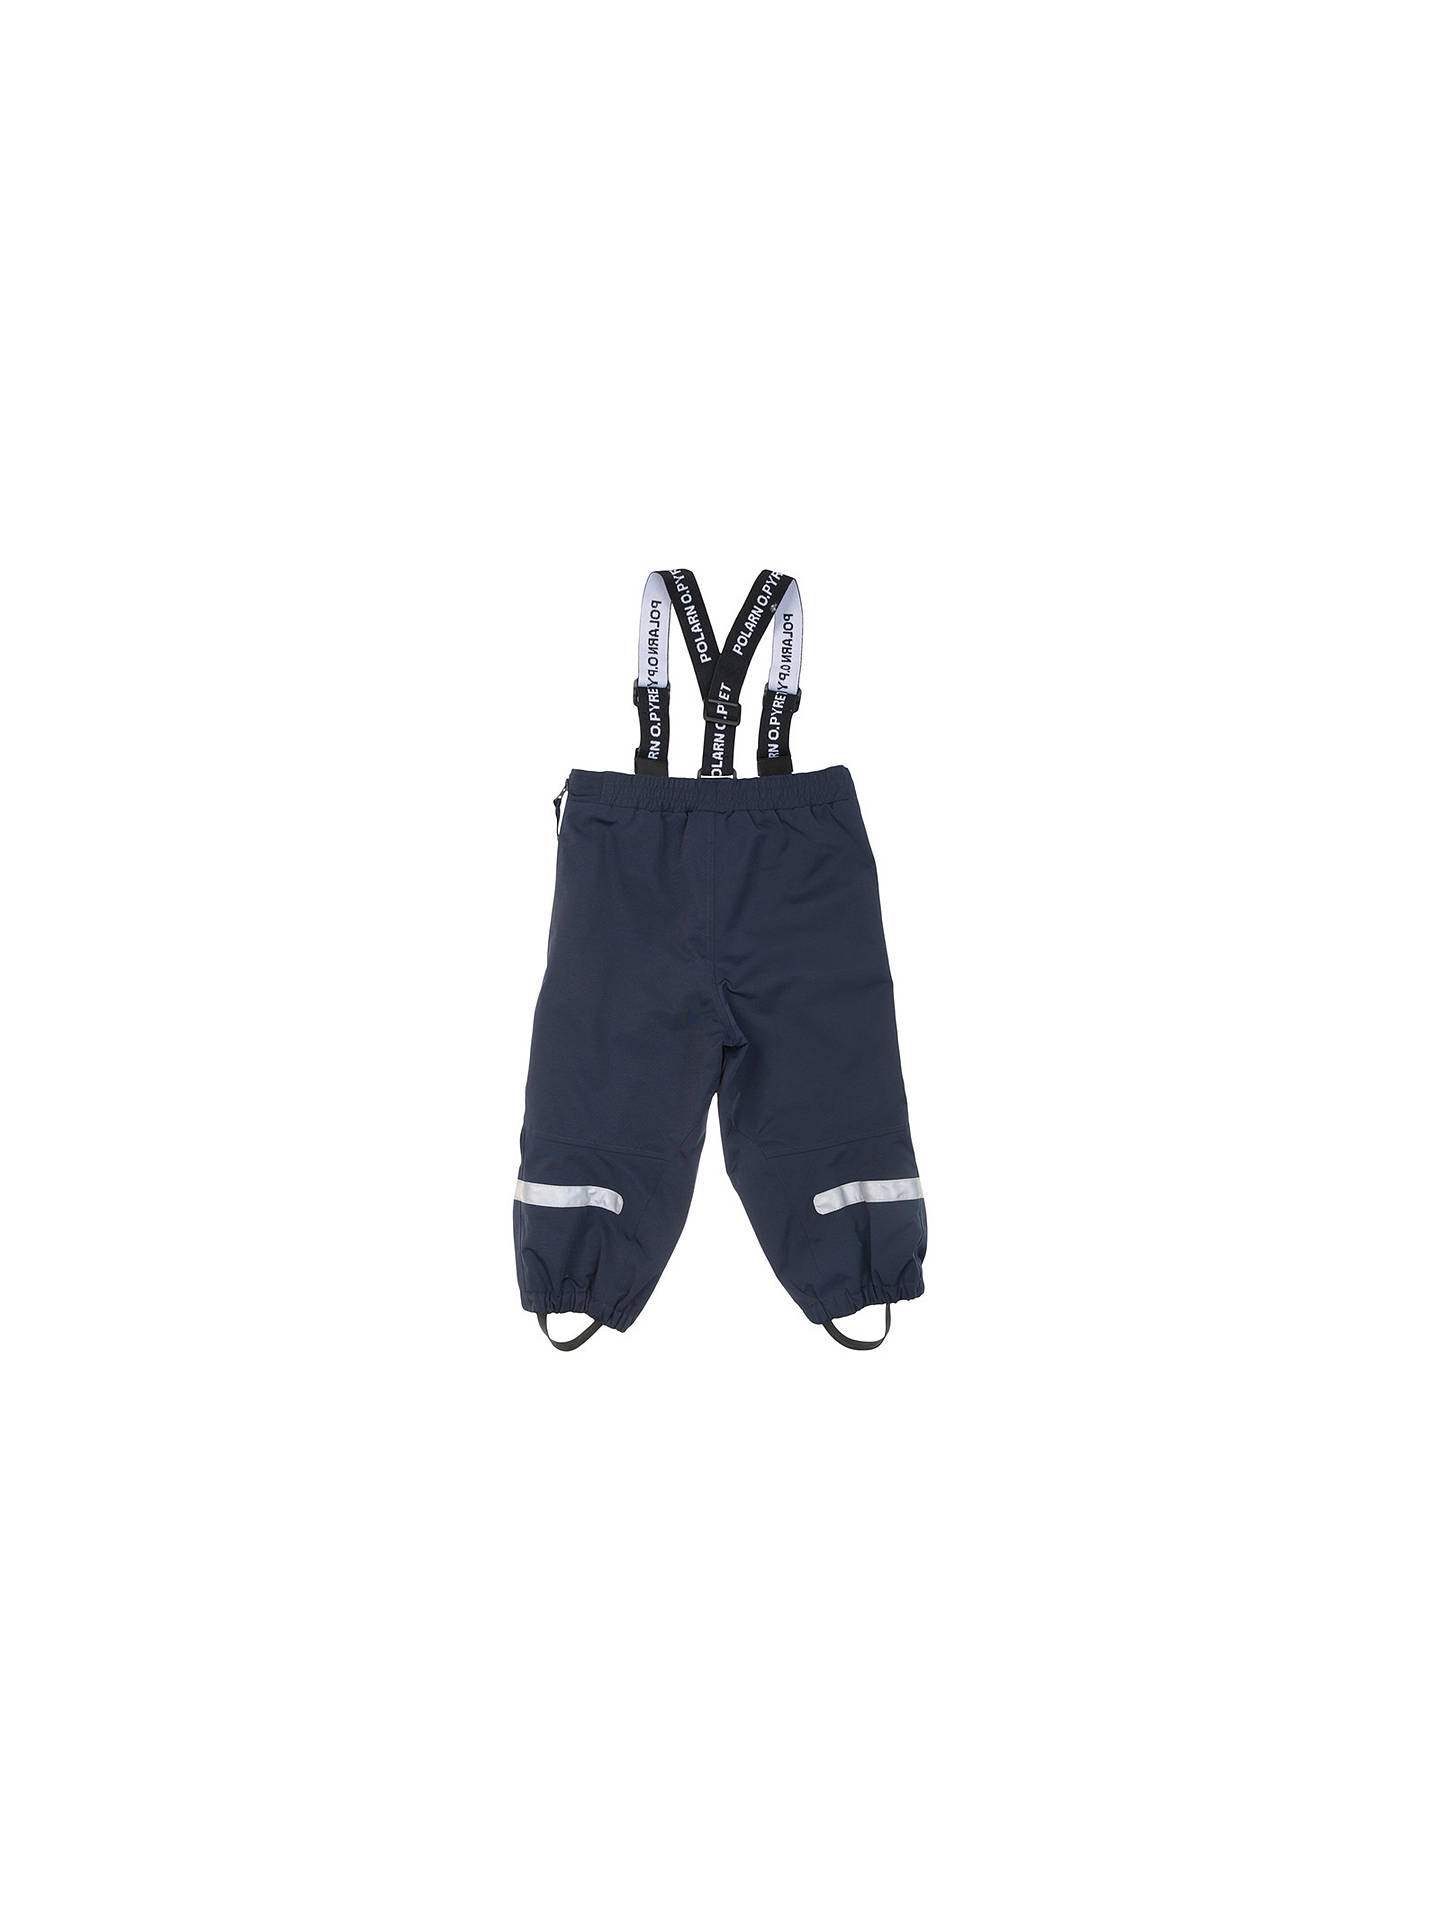 BuyPolarn O. Pyret Baby Shell Trousers, Blue, 6-9 months Online at johnlewis.com